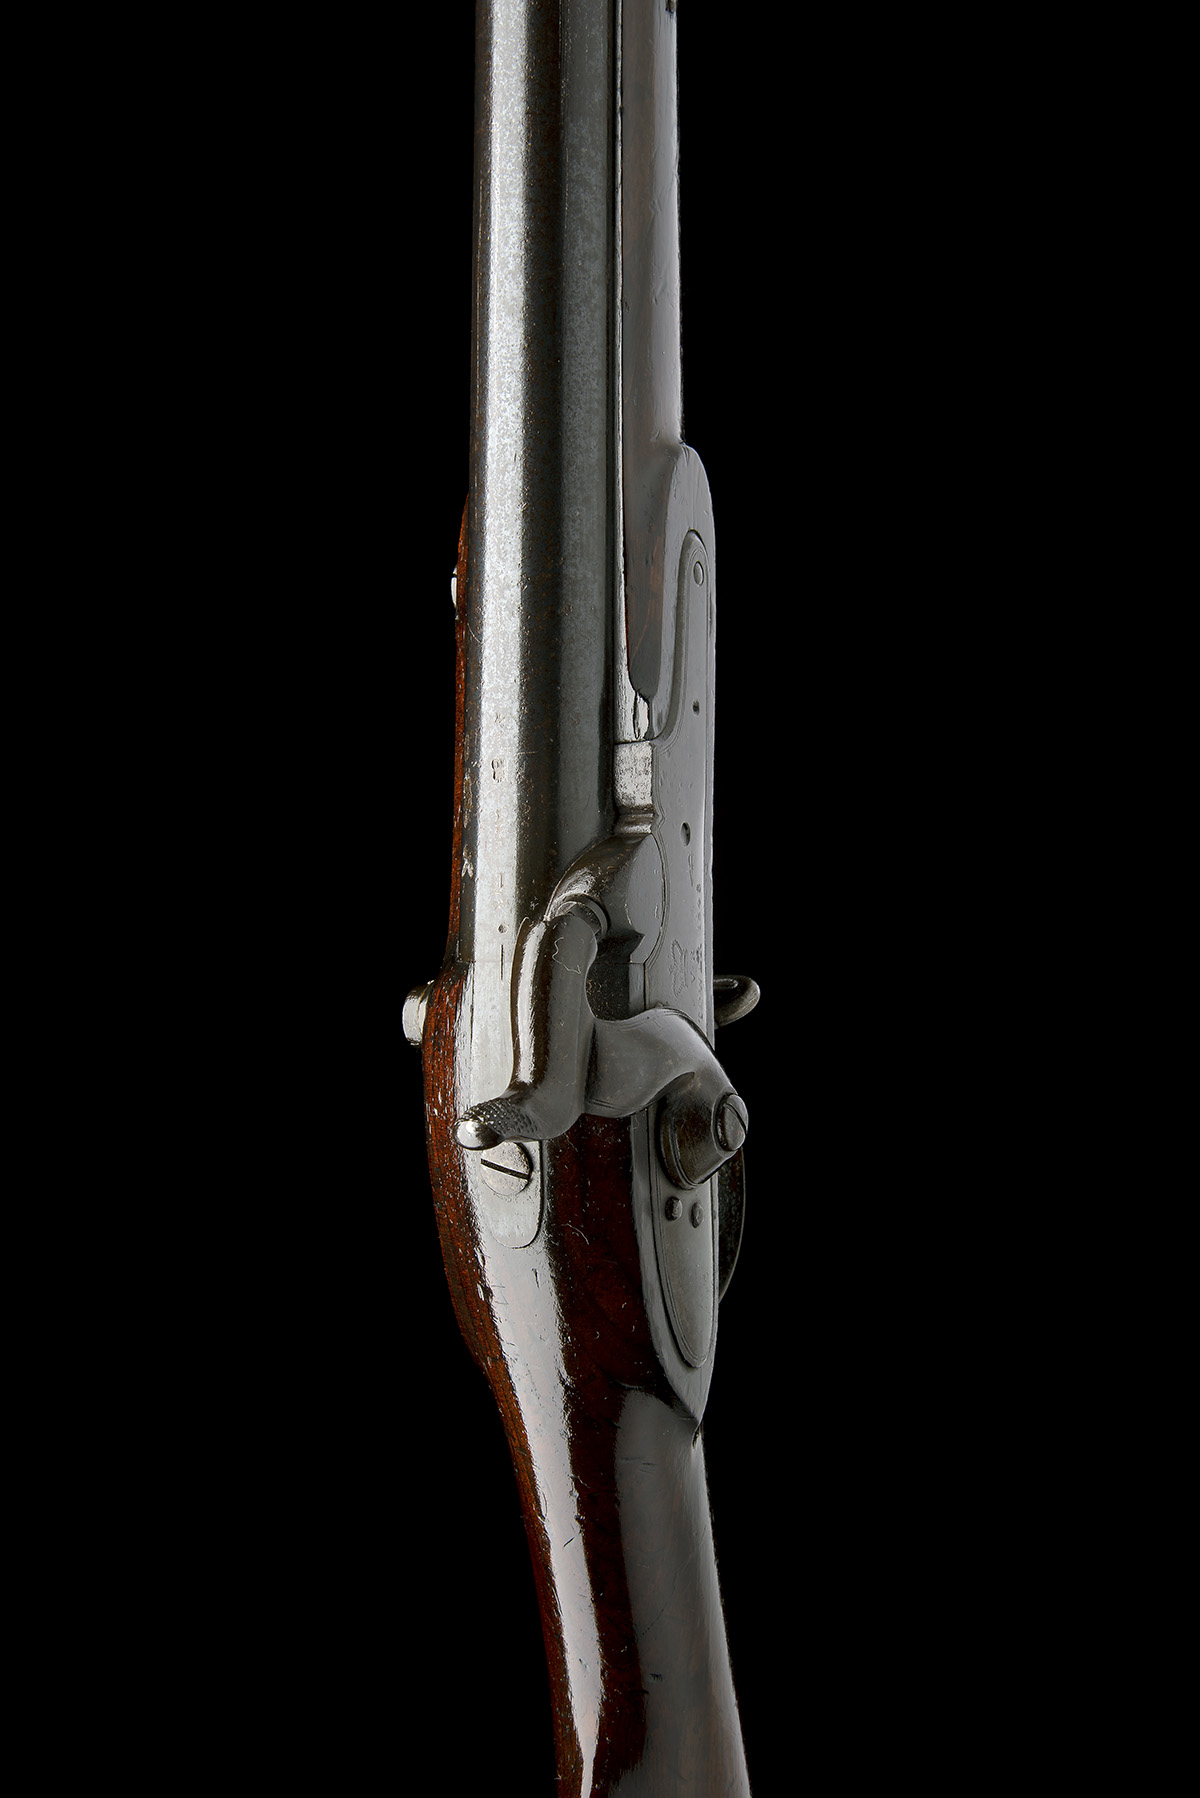 TOWER ARMOURIES, LONDON A .760 PERCUSSION MUSKET, MODEL 'PATTERN 1839', no visible serial number, - Image 6 of 7